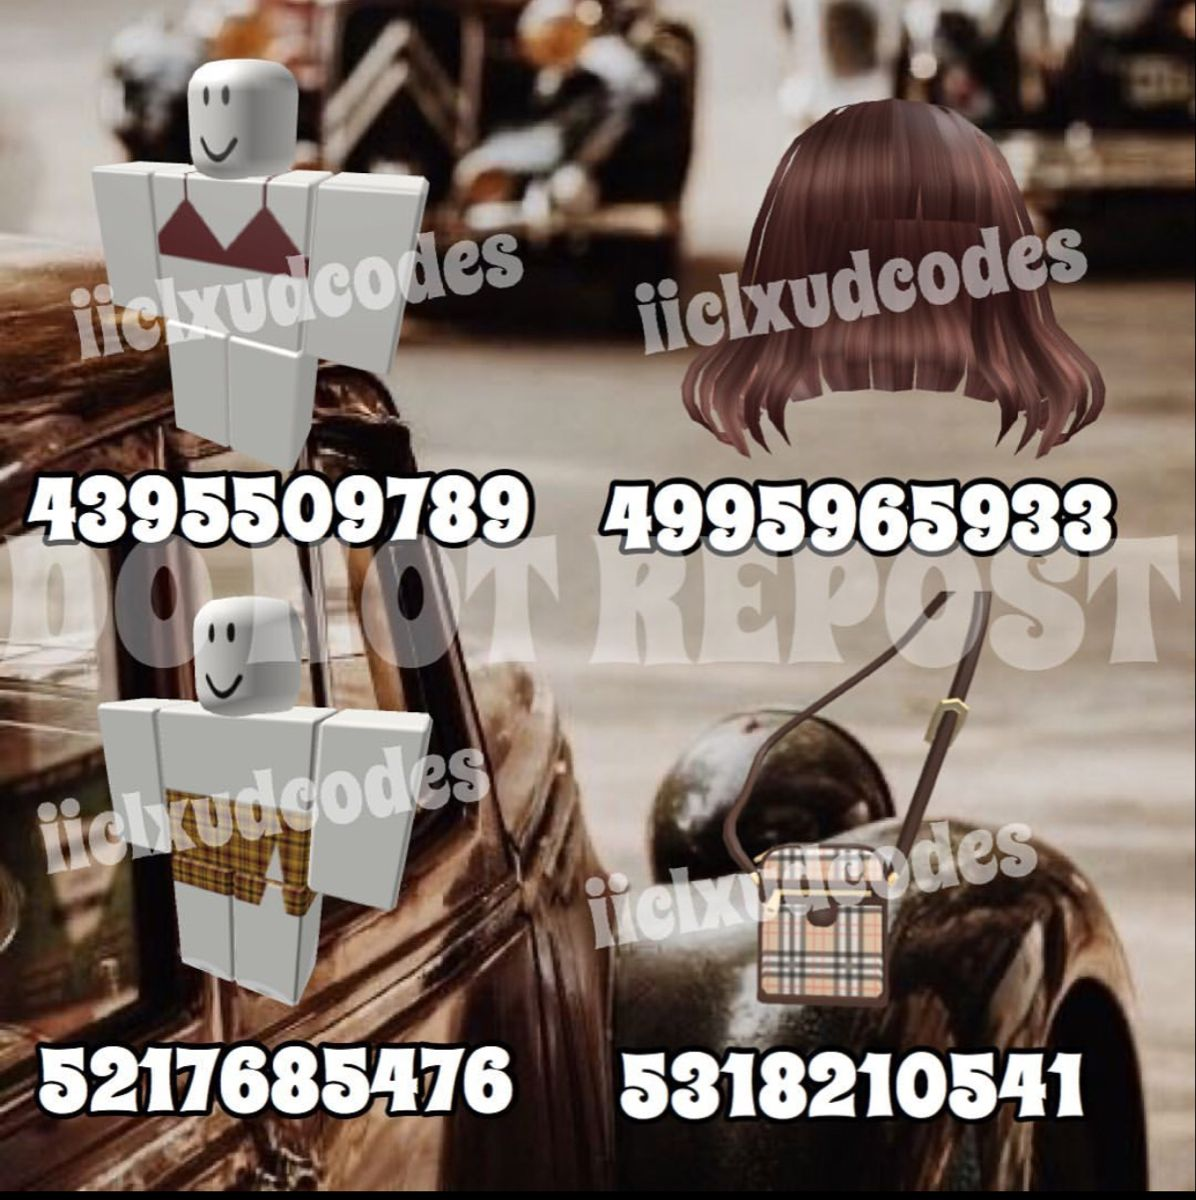 Pin By Angie Ashley On Roblox Clothing Codes Roblox Brown Hair Roblox Girl Outfits